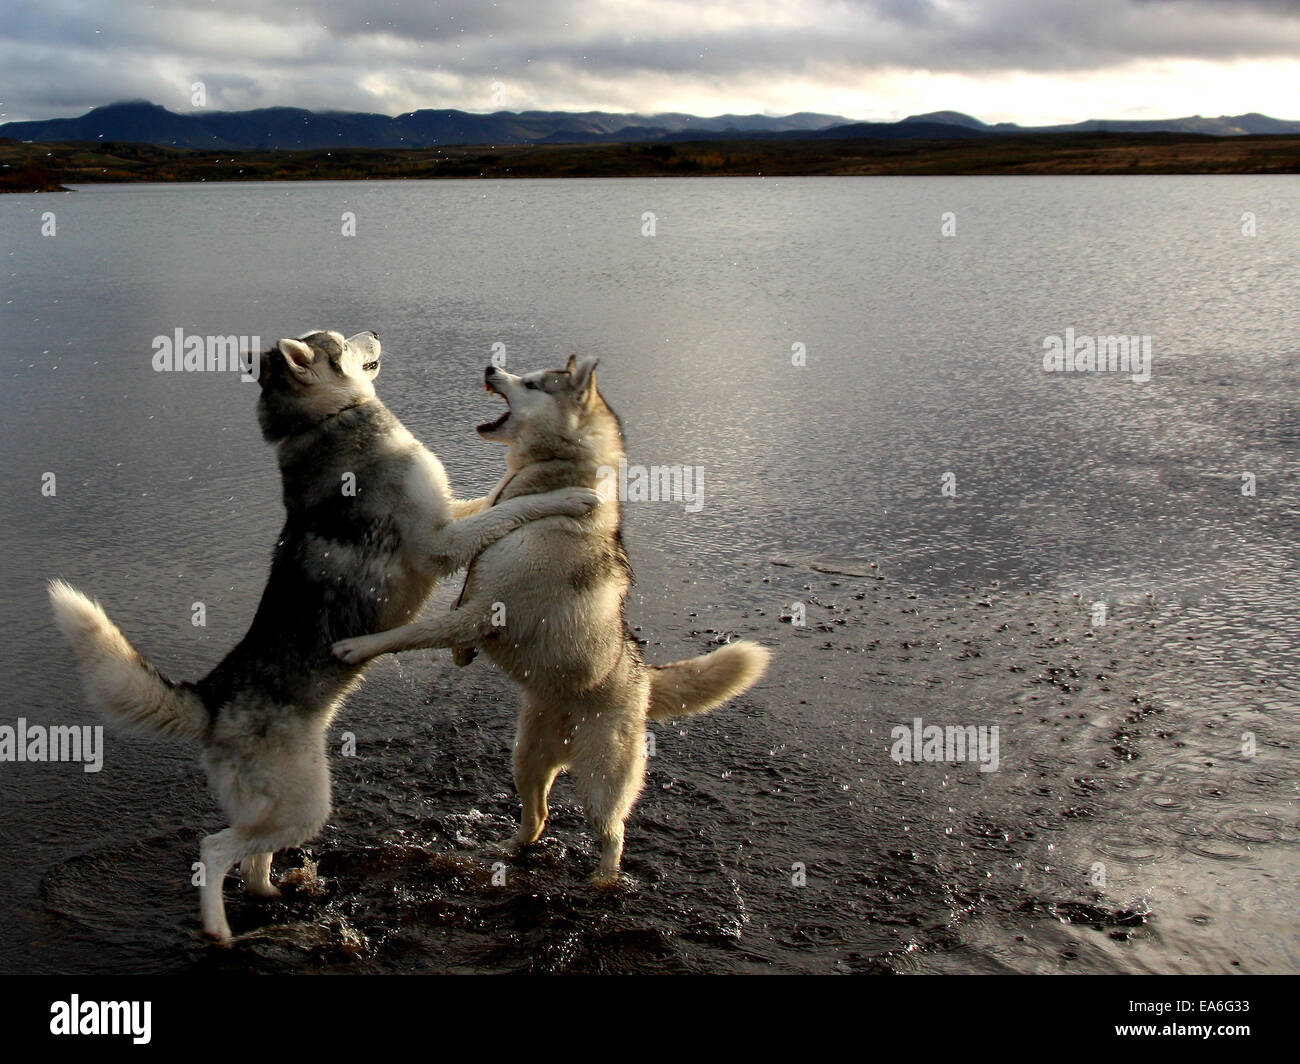 Iceland, Hafravatn, Husky dogs playing beside water - Stock Image